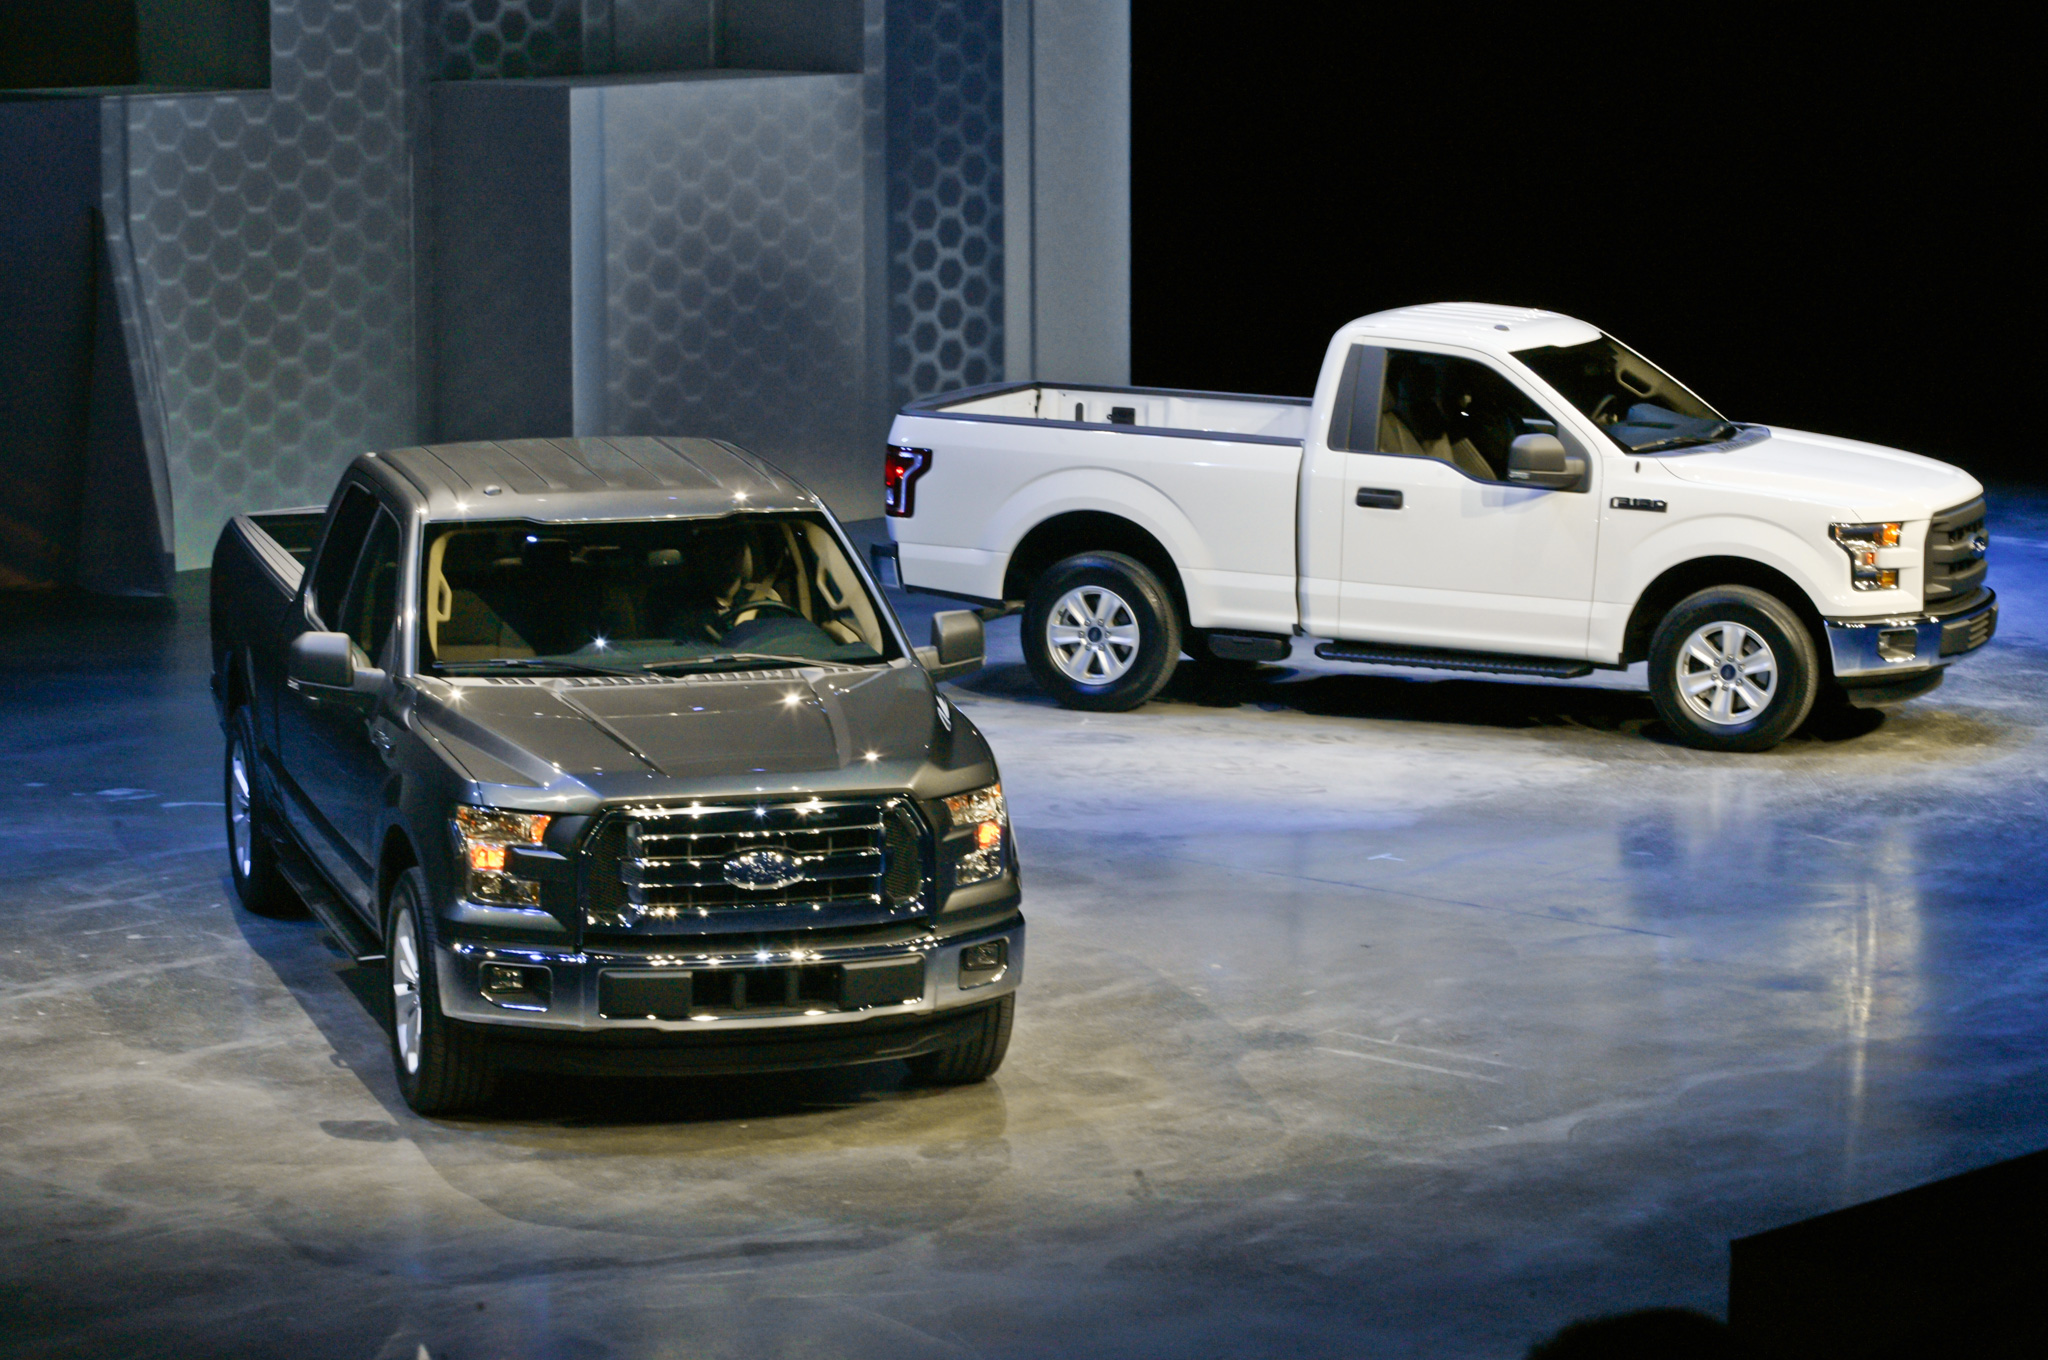 Best of the U.S.: Top American Cars and Trucks at the 2014 Detroit Auto Show